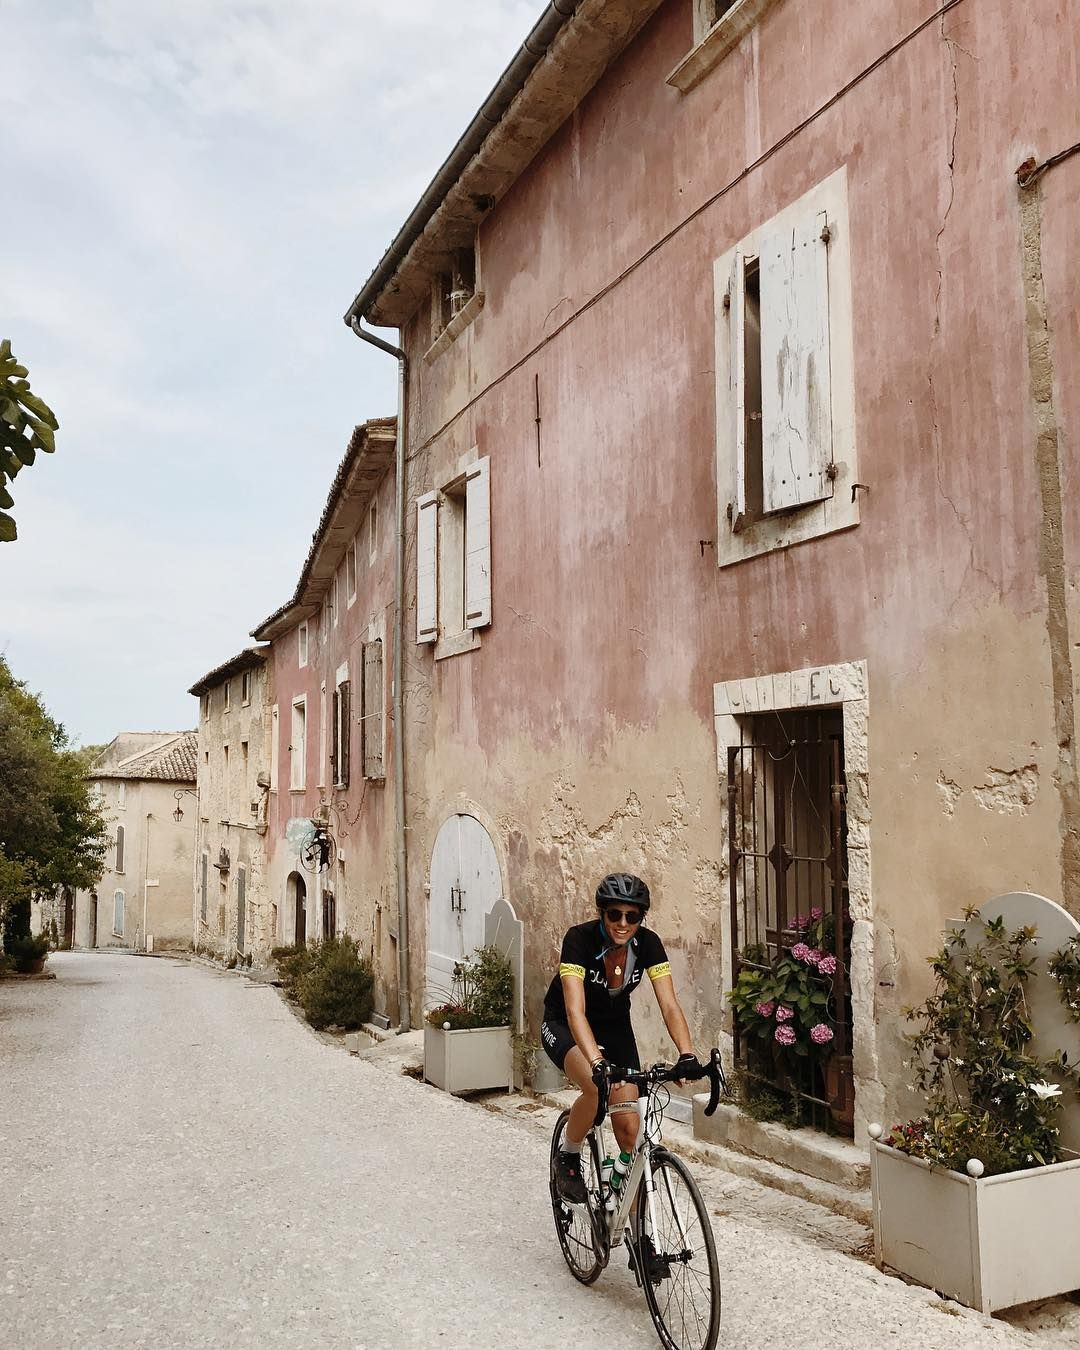 Little villages pickle the Luberon each with their distinct magical expression this is the crest of a sharp little climb into one of the most memorable Oppede le Vieux. . . #cyclephotography #cycleshots #summercycling #cyclistlife #cycleprovence #luberoncycling #luberonvalley #oppedelevieux #cyclinglove #cyclingwomen #seetheworldbybike #exploreprovence #explorebybike #specializedrobaix